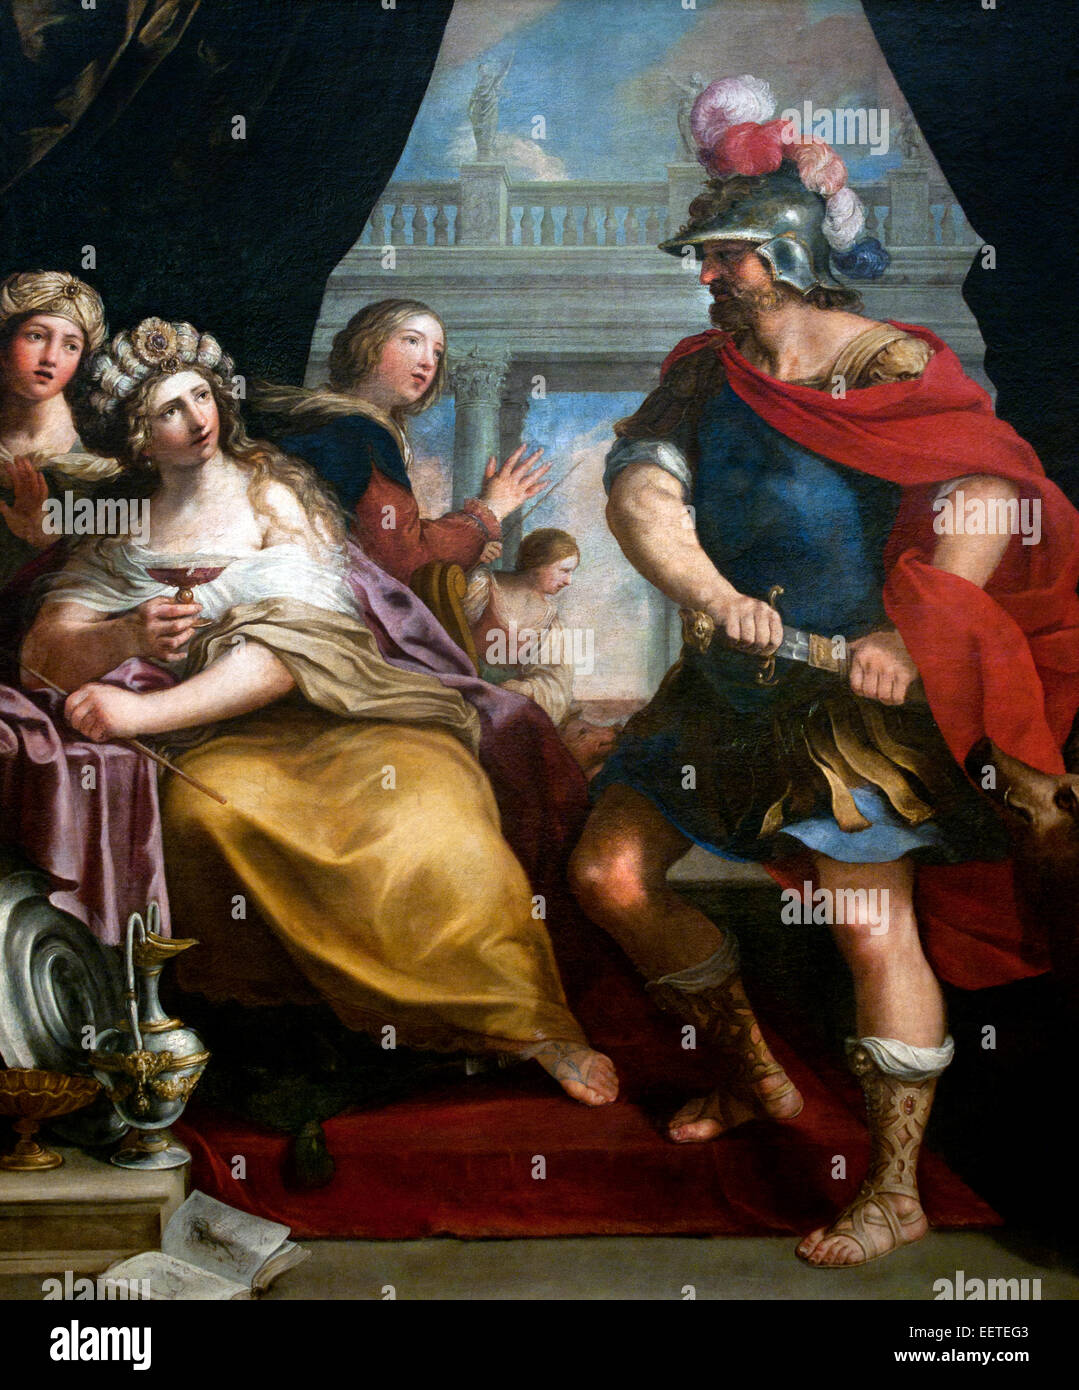 Ulysses Odysseus And Circe Goddess Of Magic 1650